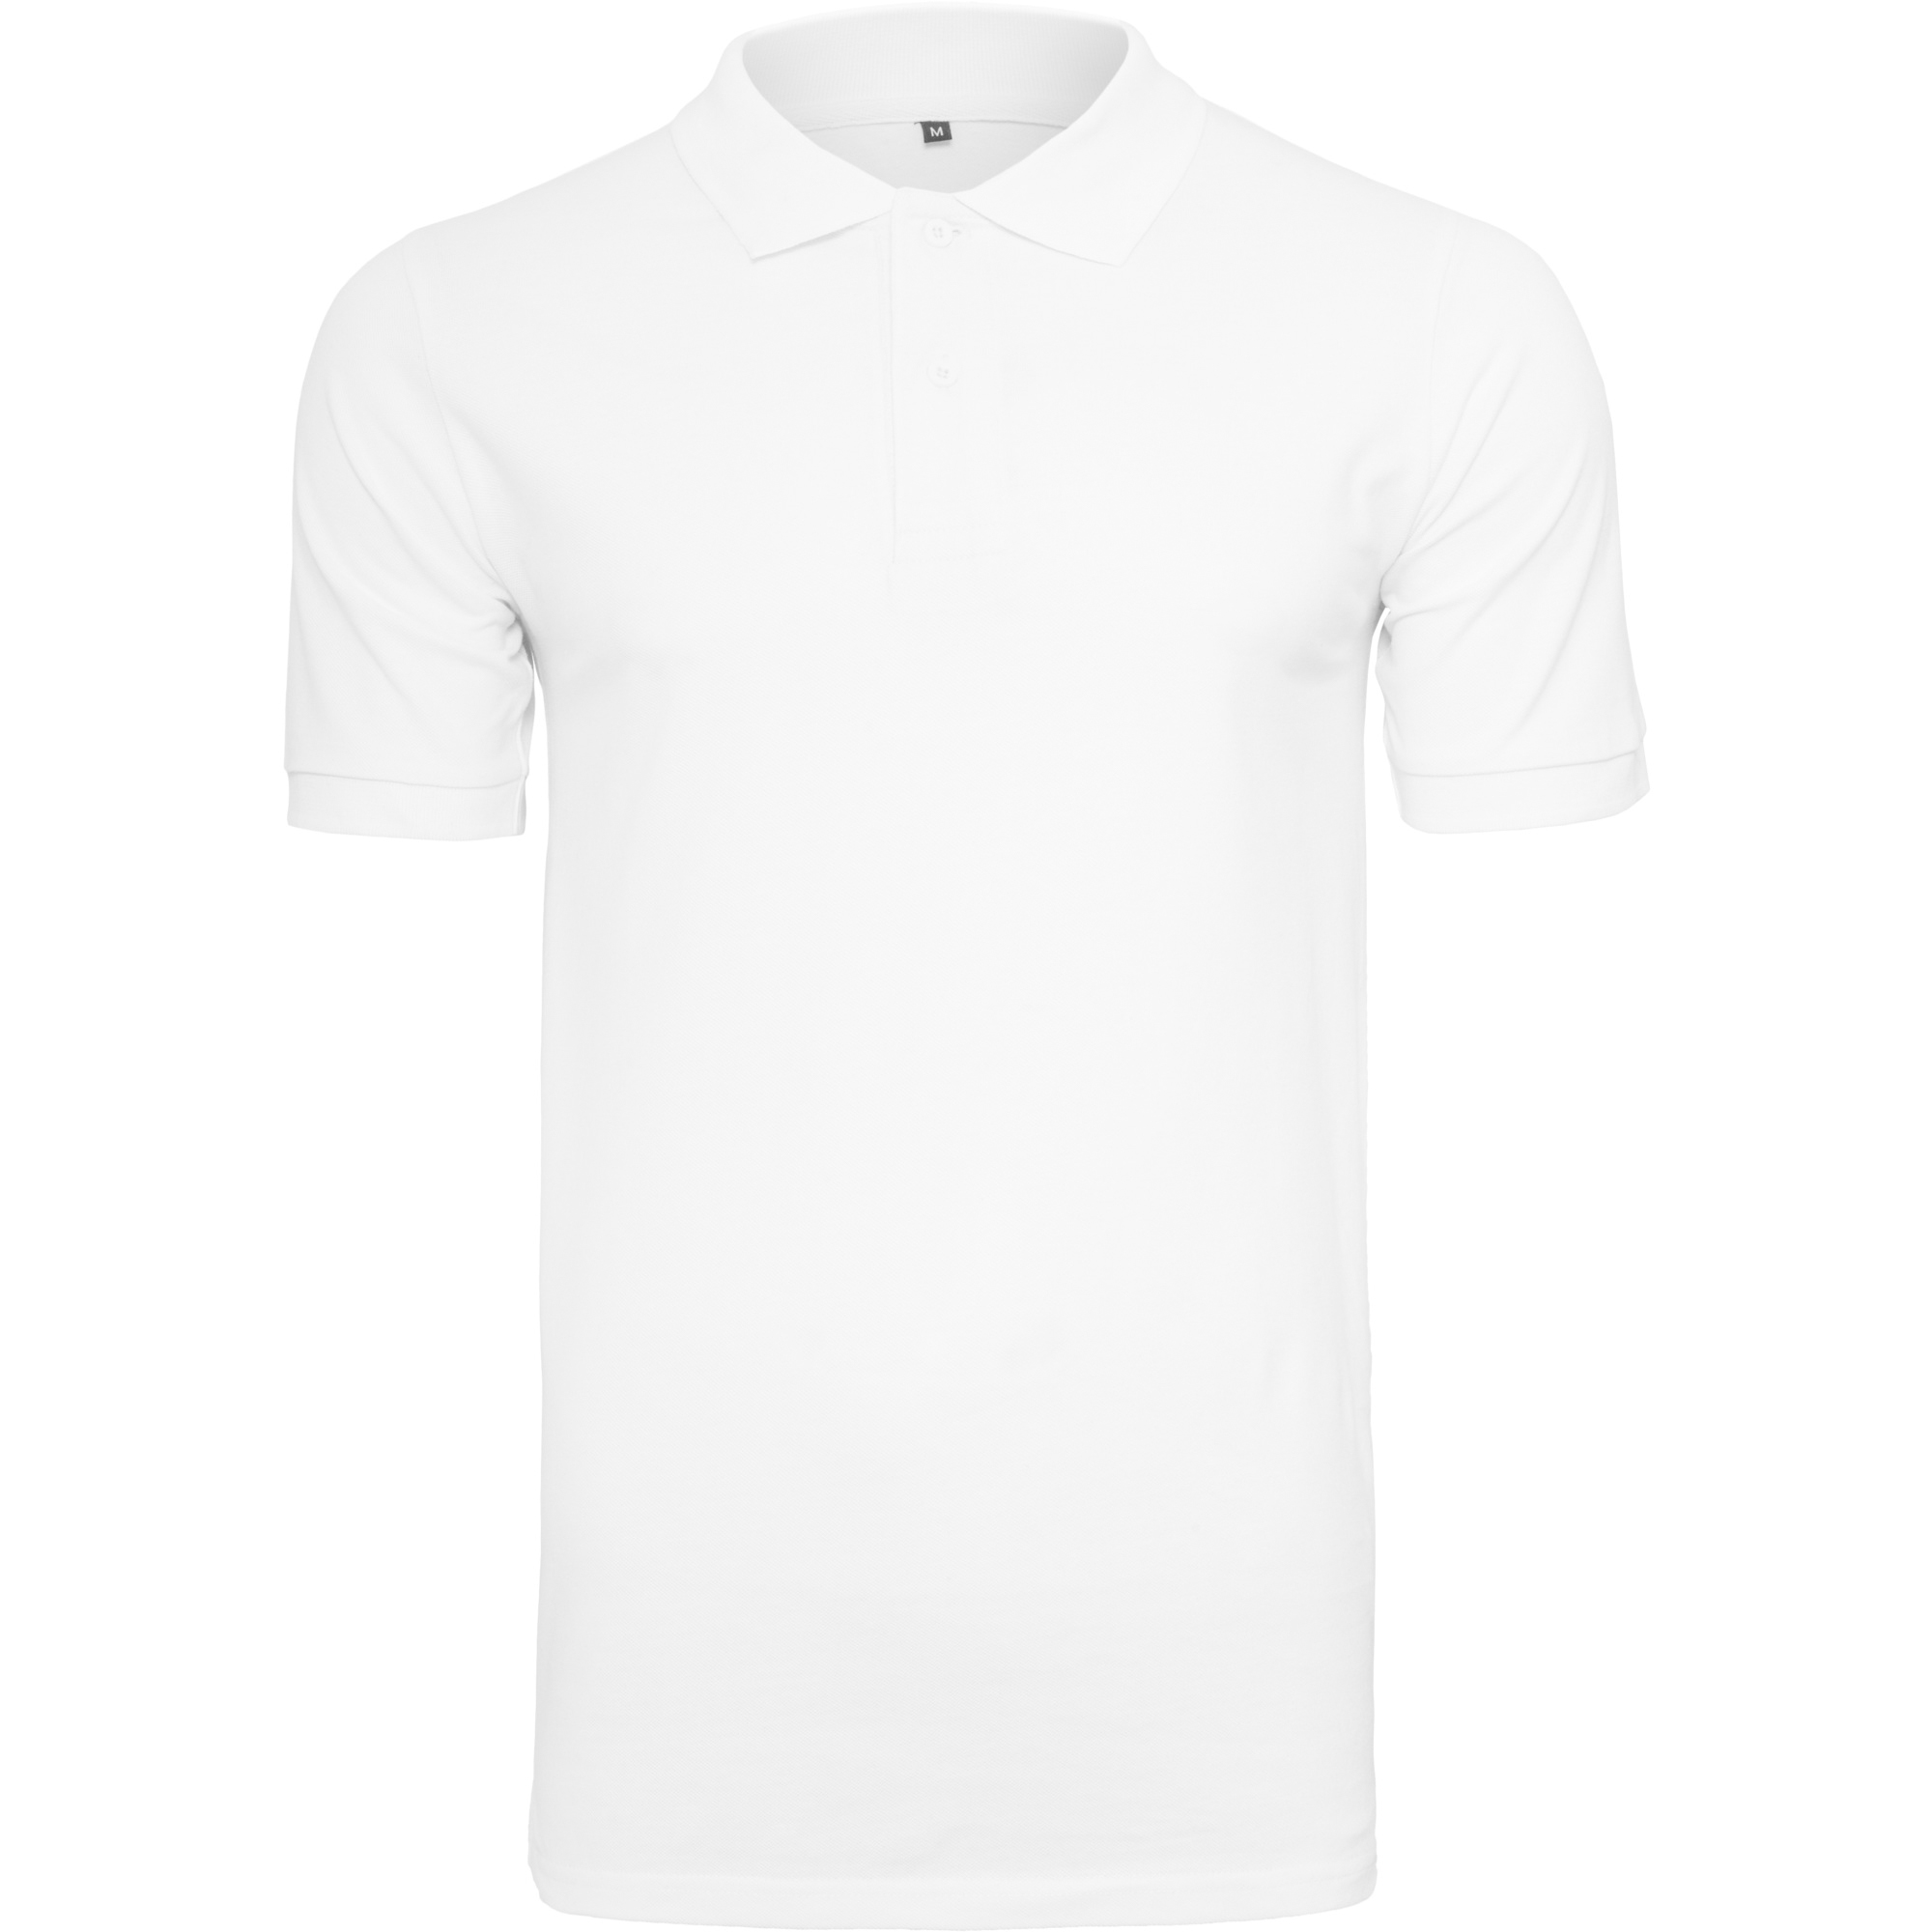 Build Your Brand Mens Pique Fitted Polo Shirt (L) (White)